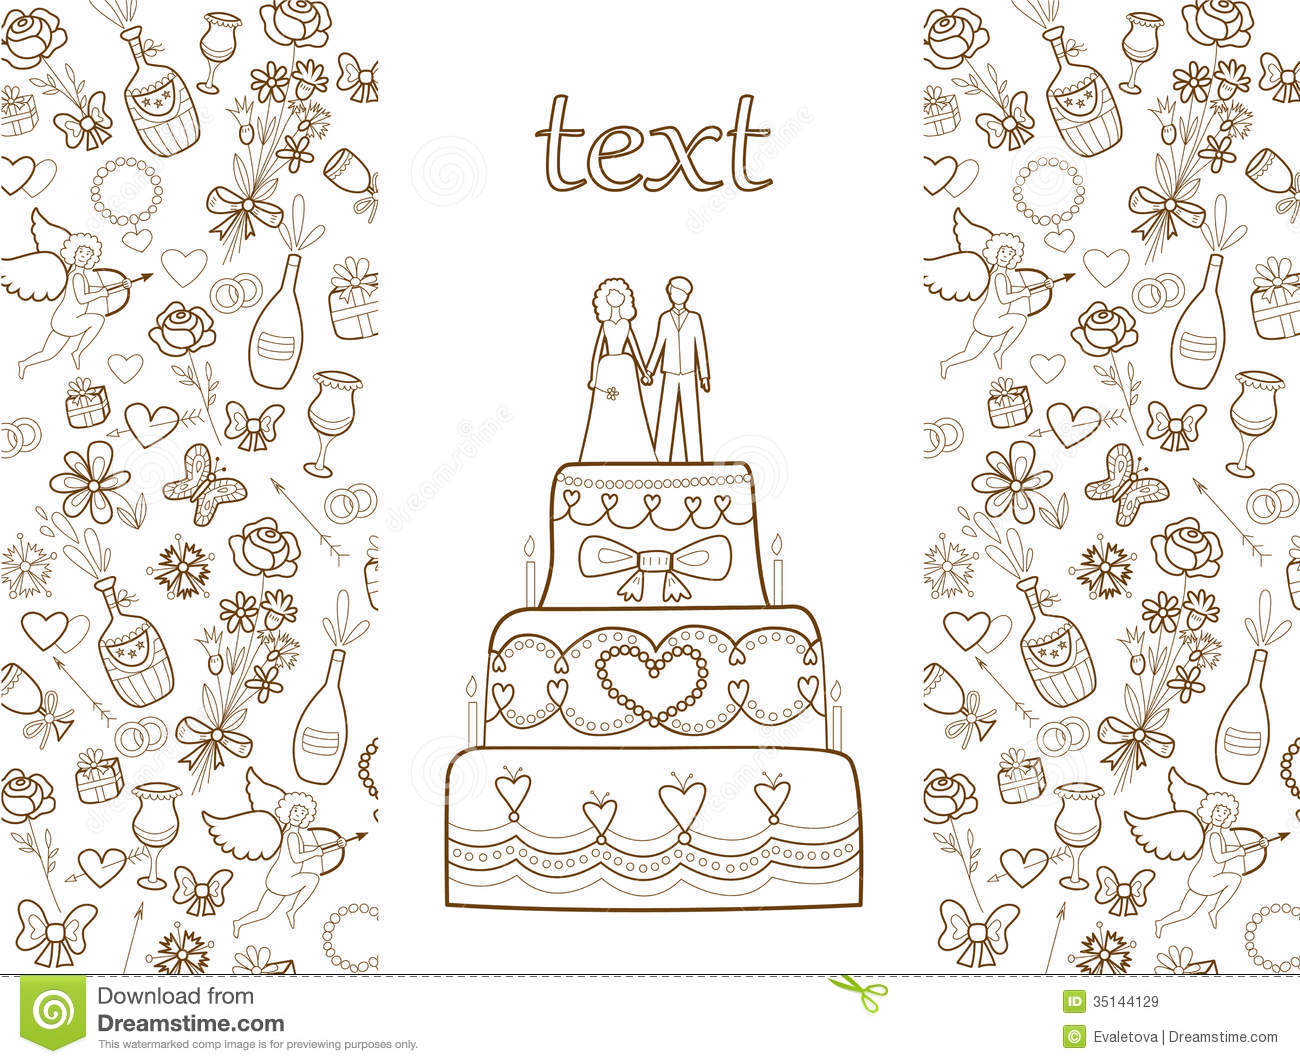 Free Wedding Invitation Printable is awesome invitations layout